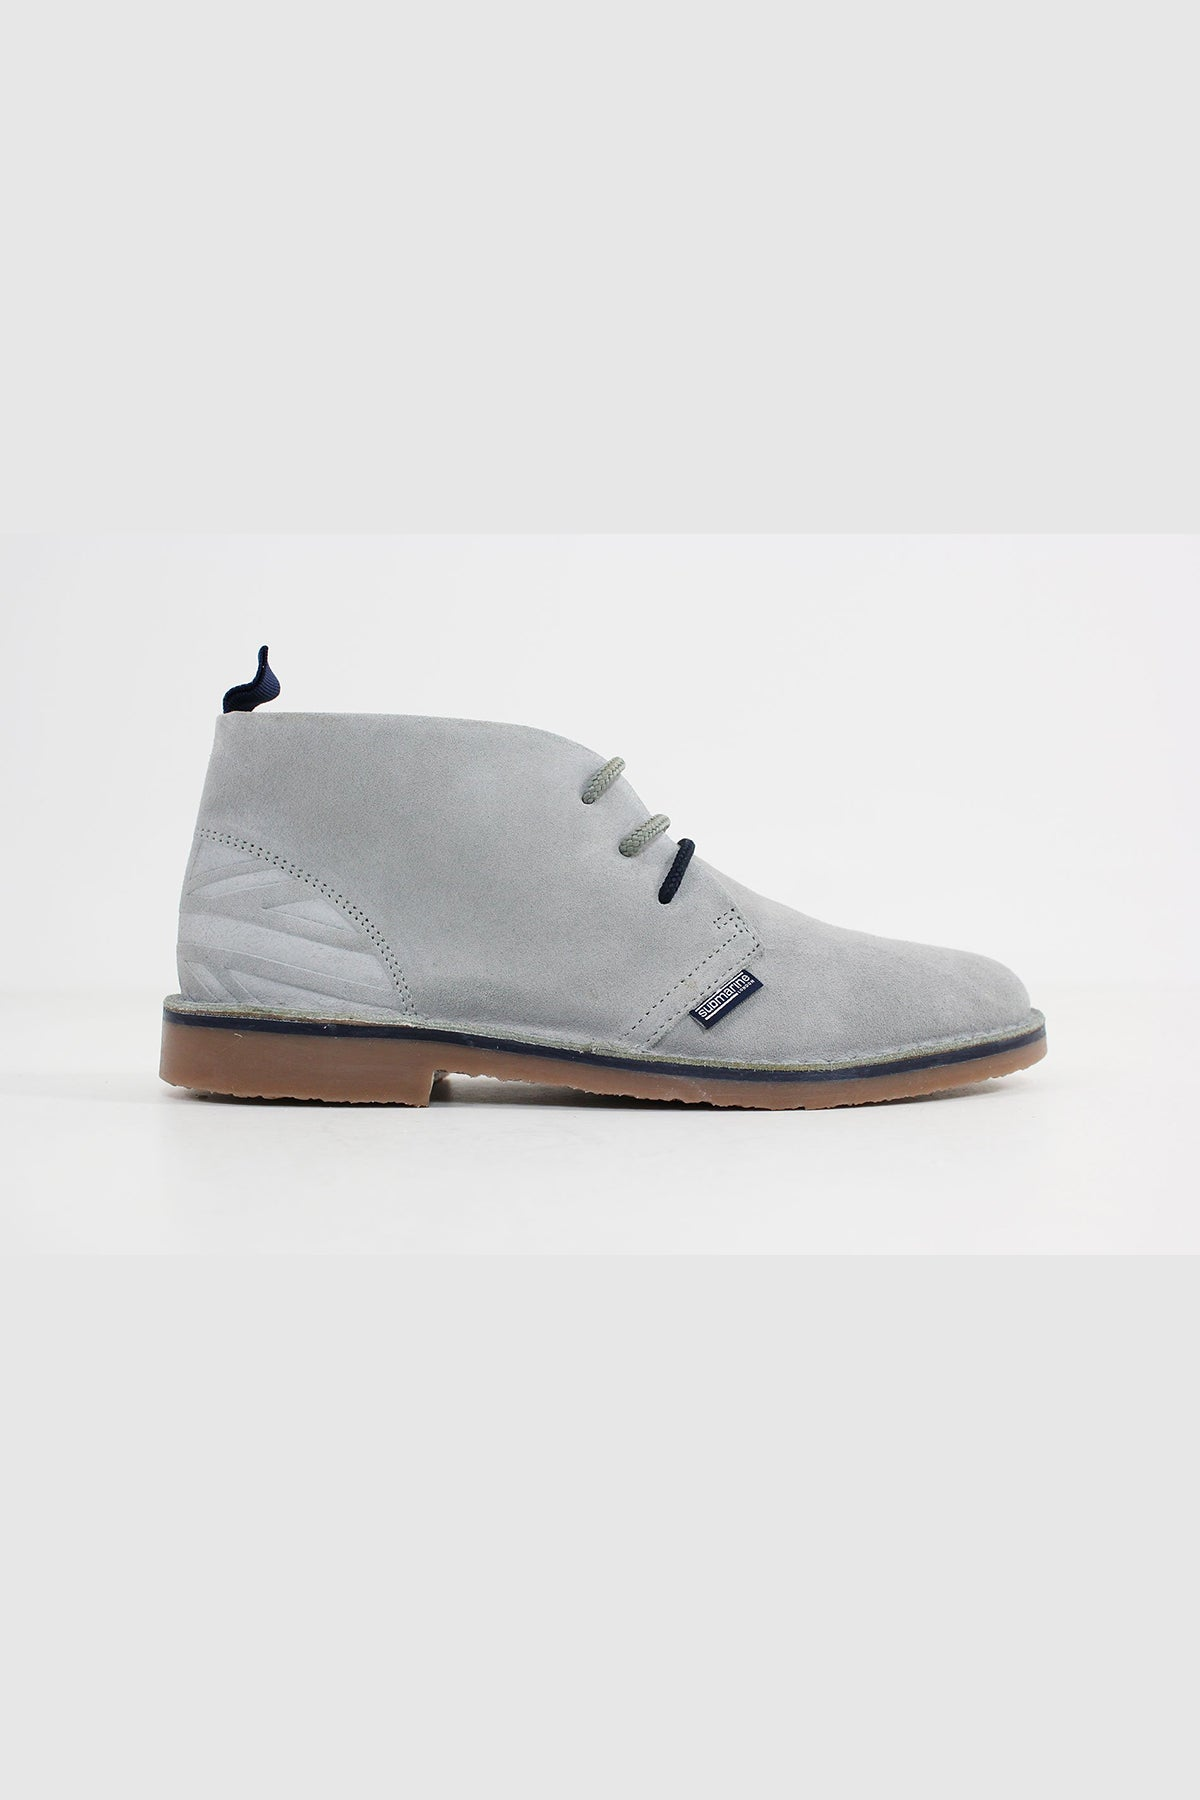 Submarine London - New Manchester Suede (Ciment-Deep)